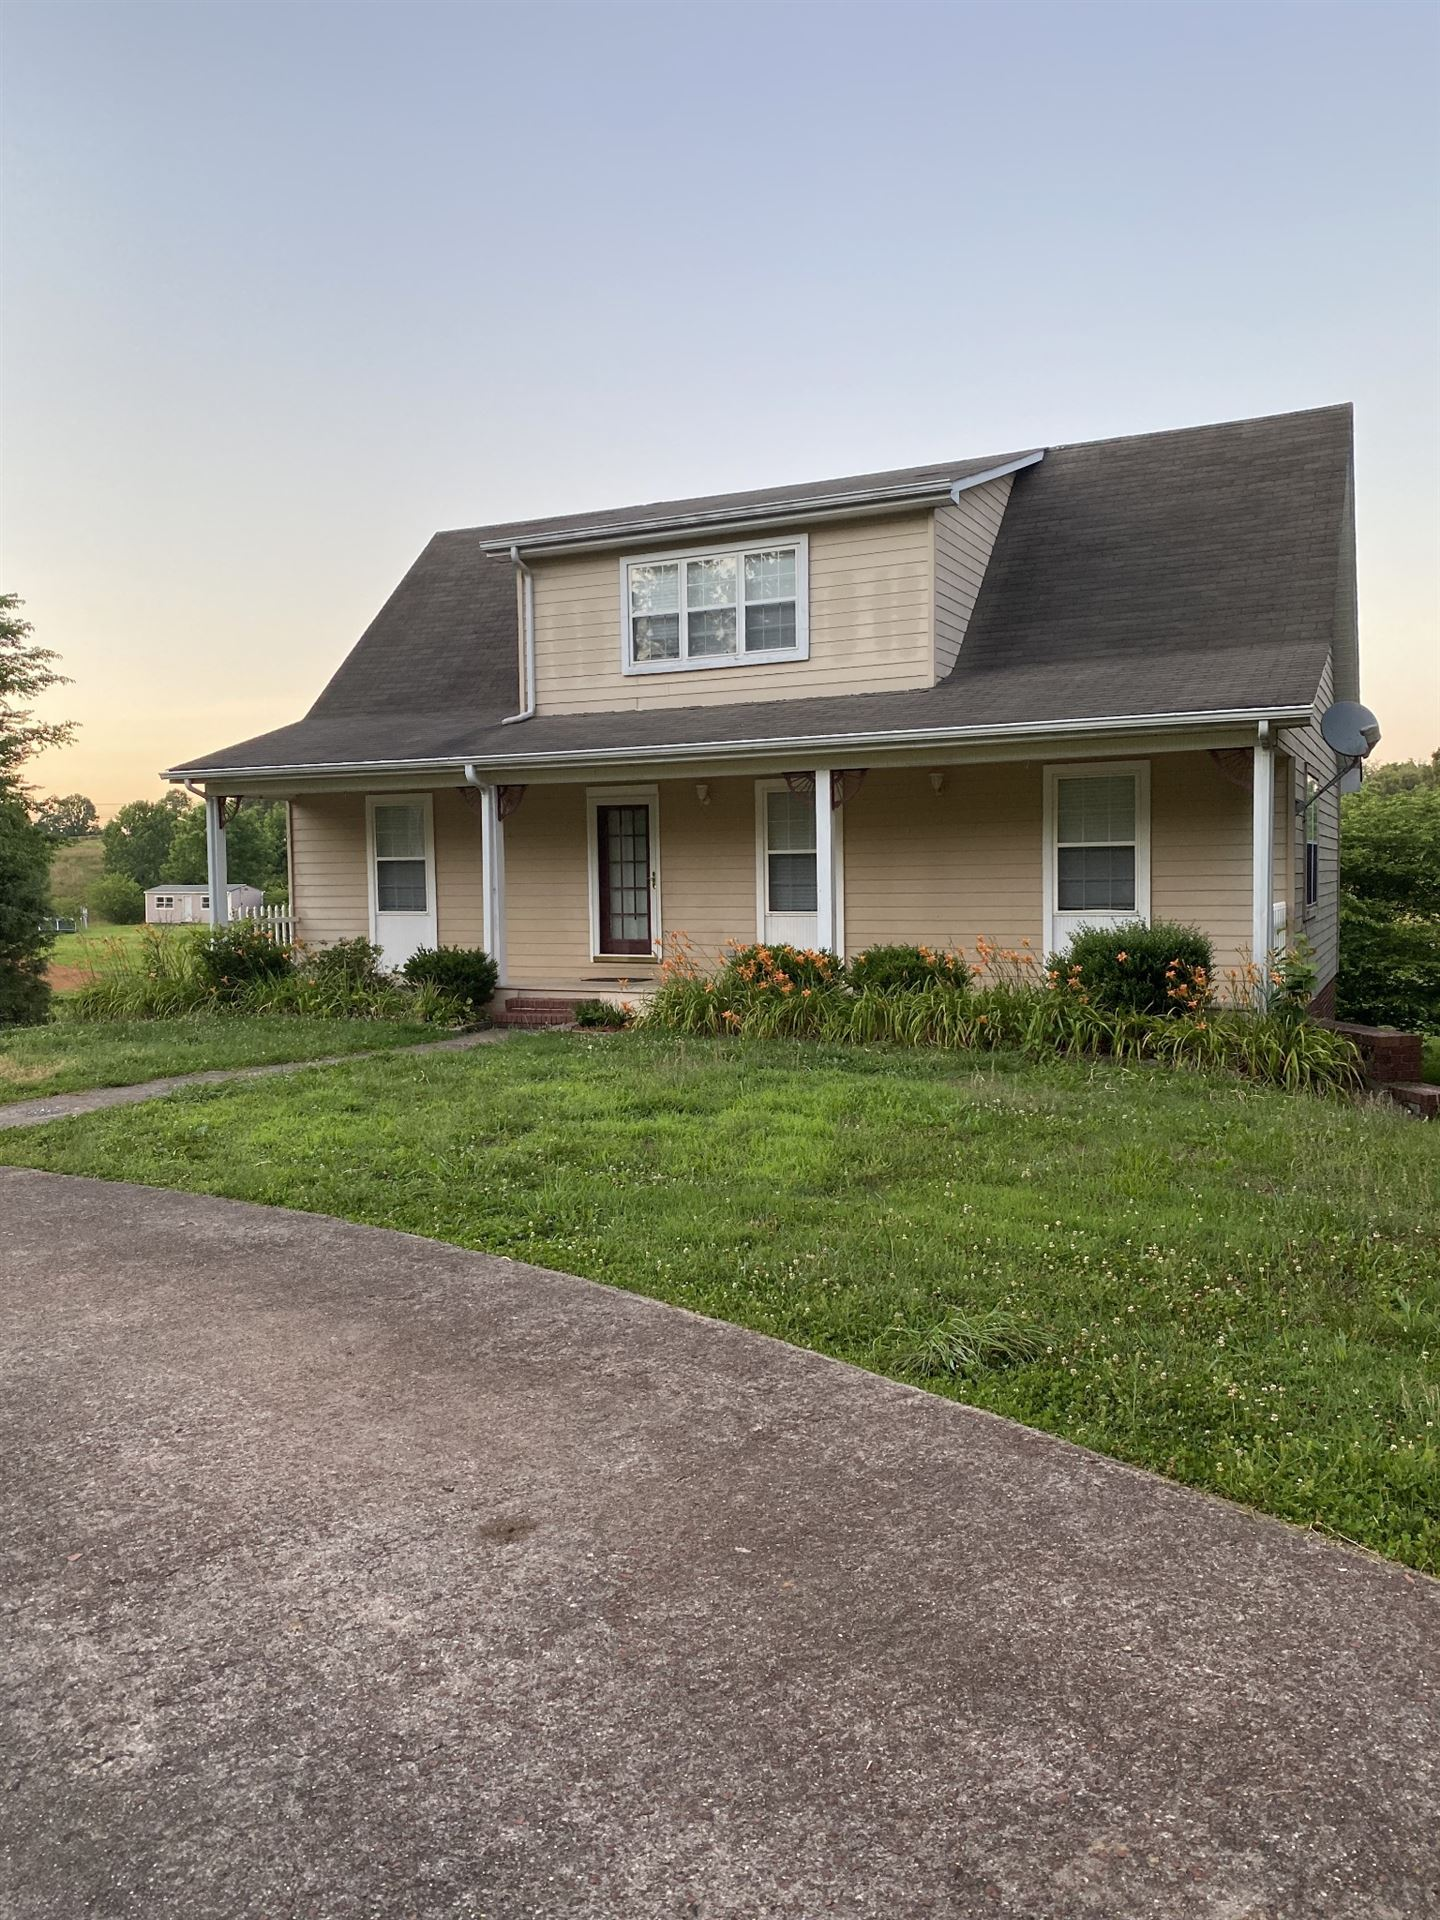 299 Lakeview Rd, Walling, TN 38587 - MLS#: 2265294